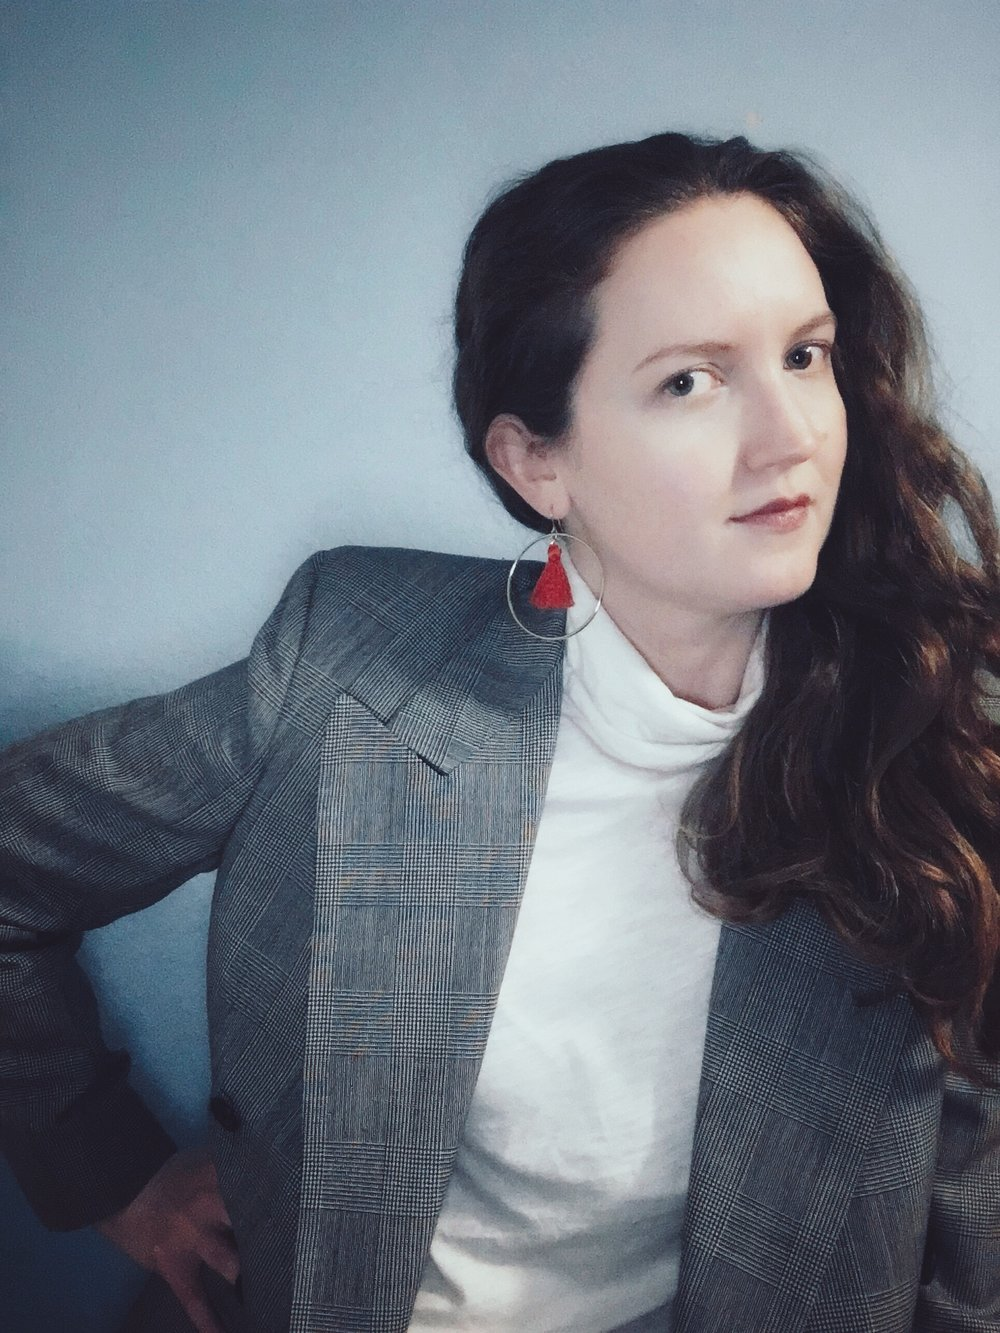 Vintage Brooks Brothers Blazer + Madewell White Turtleneck + J Crew Red Tassel Earrings